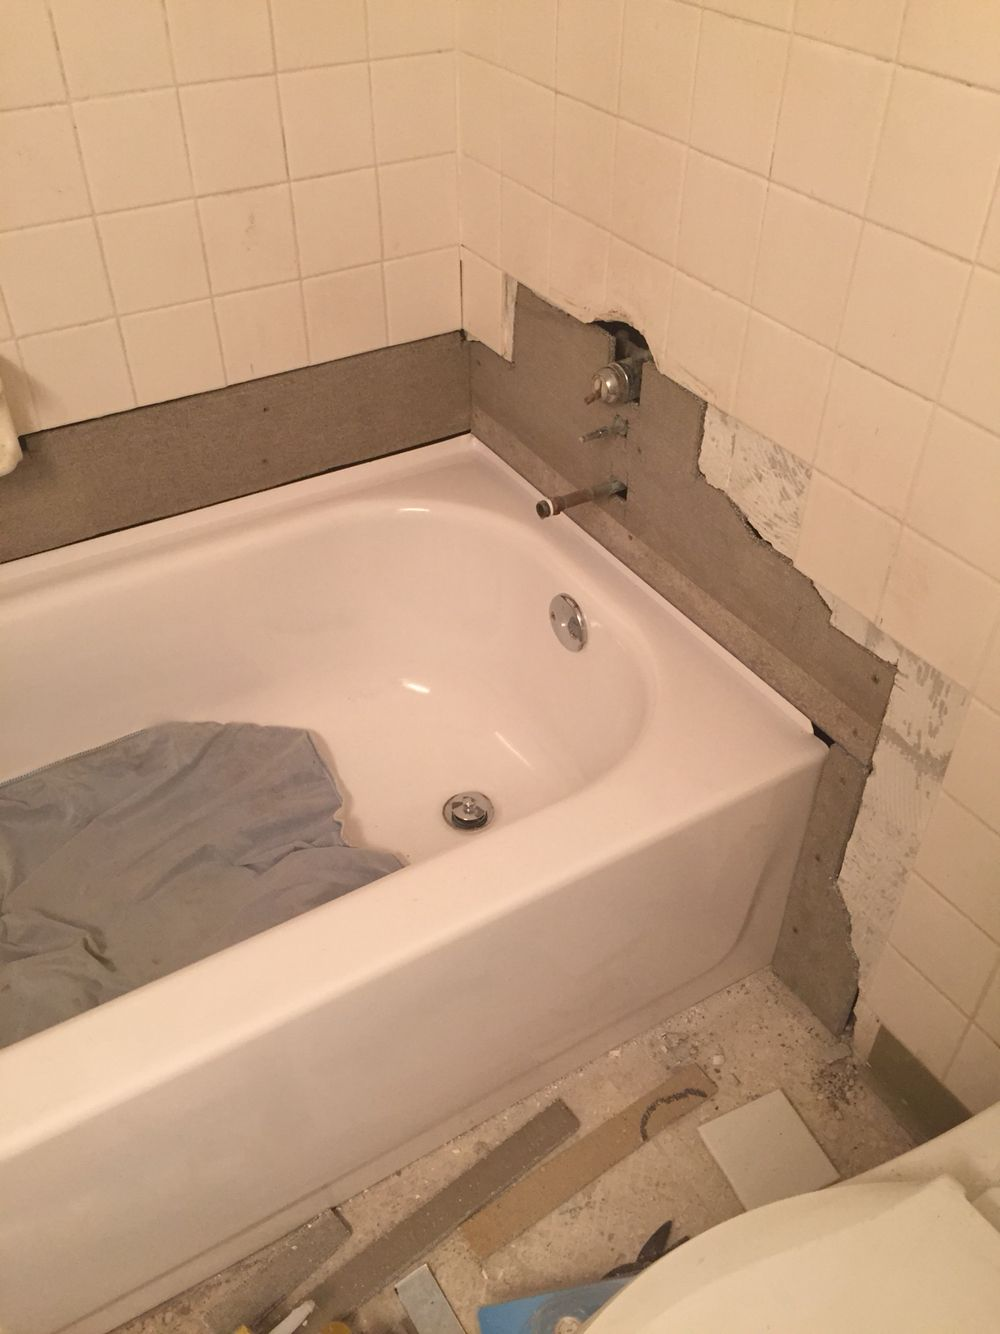 Plumbing fixed....new tub inserted, adding durarock to build the ...